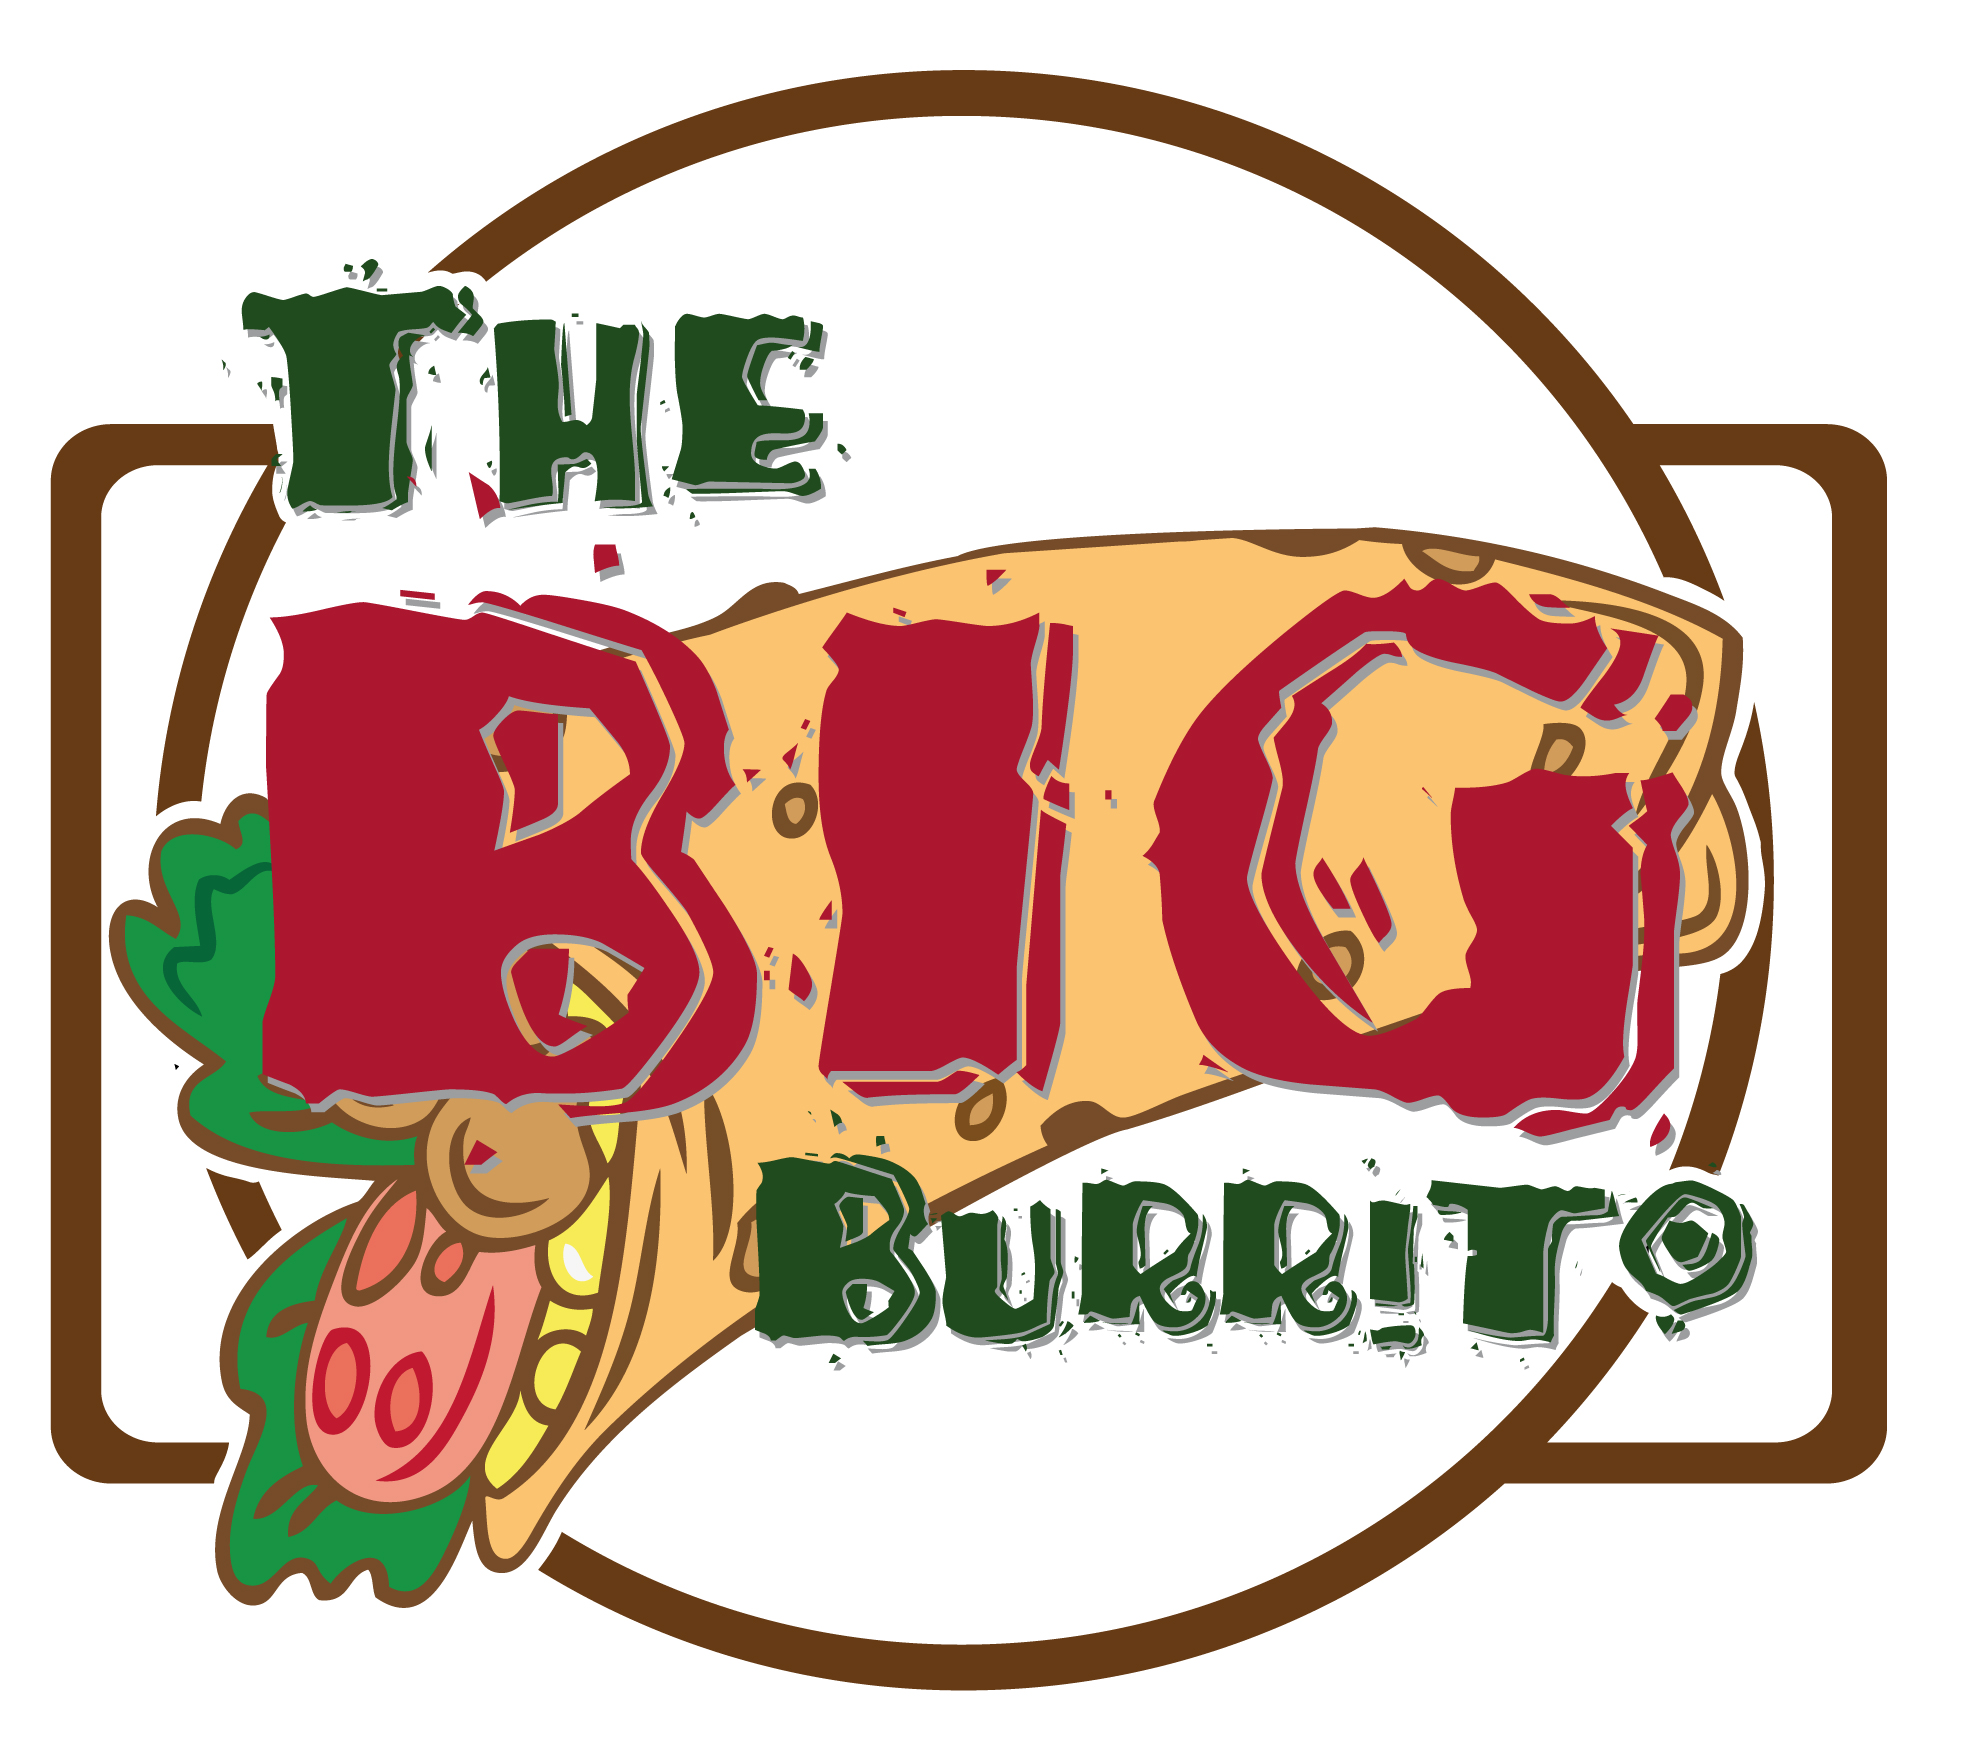 The Big Burrito